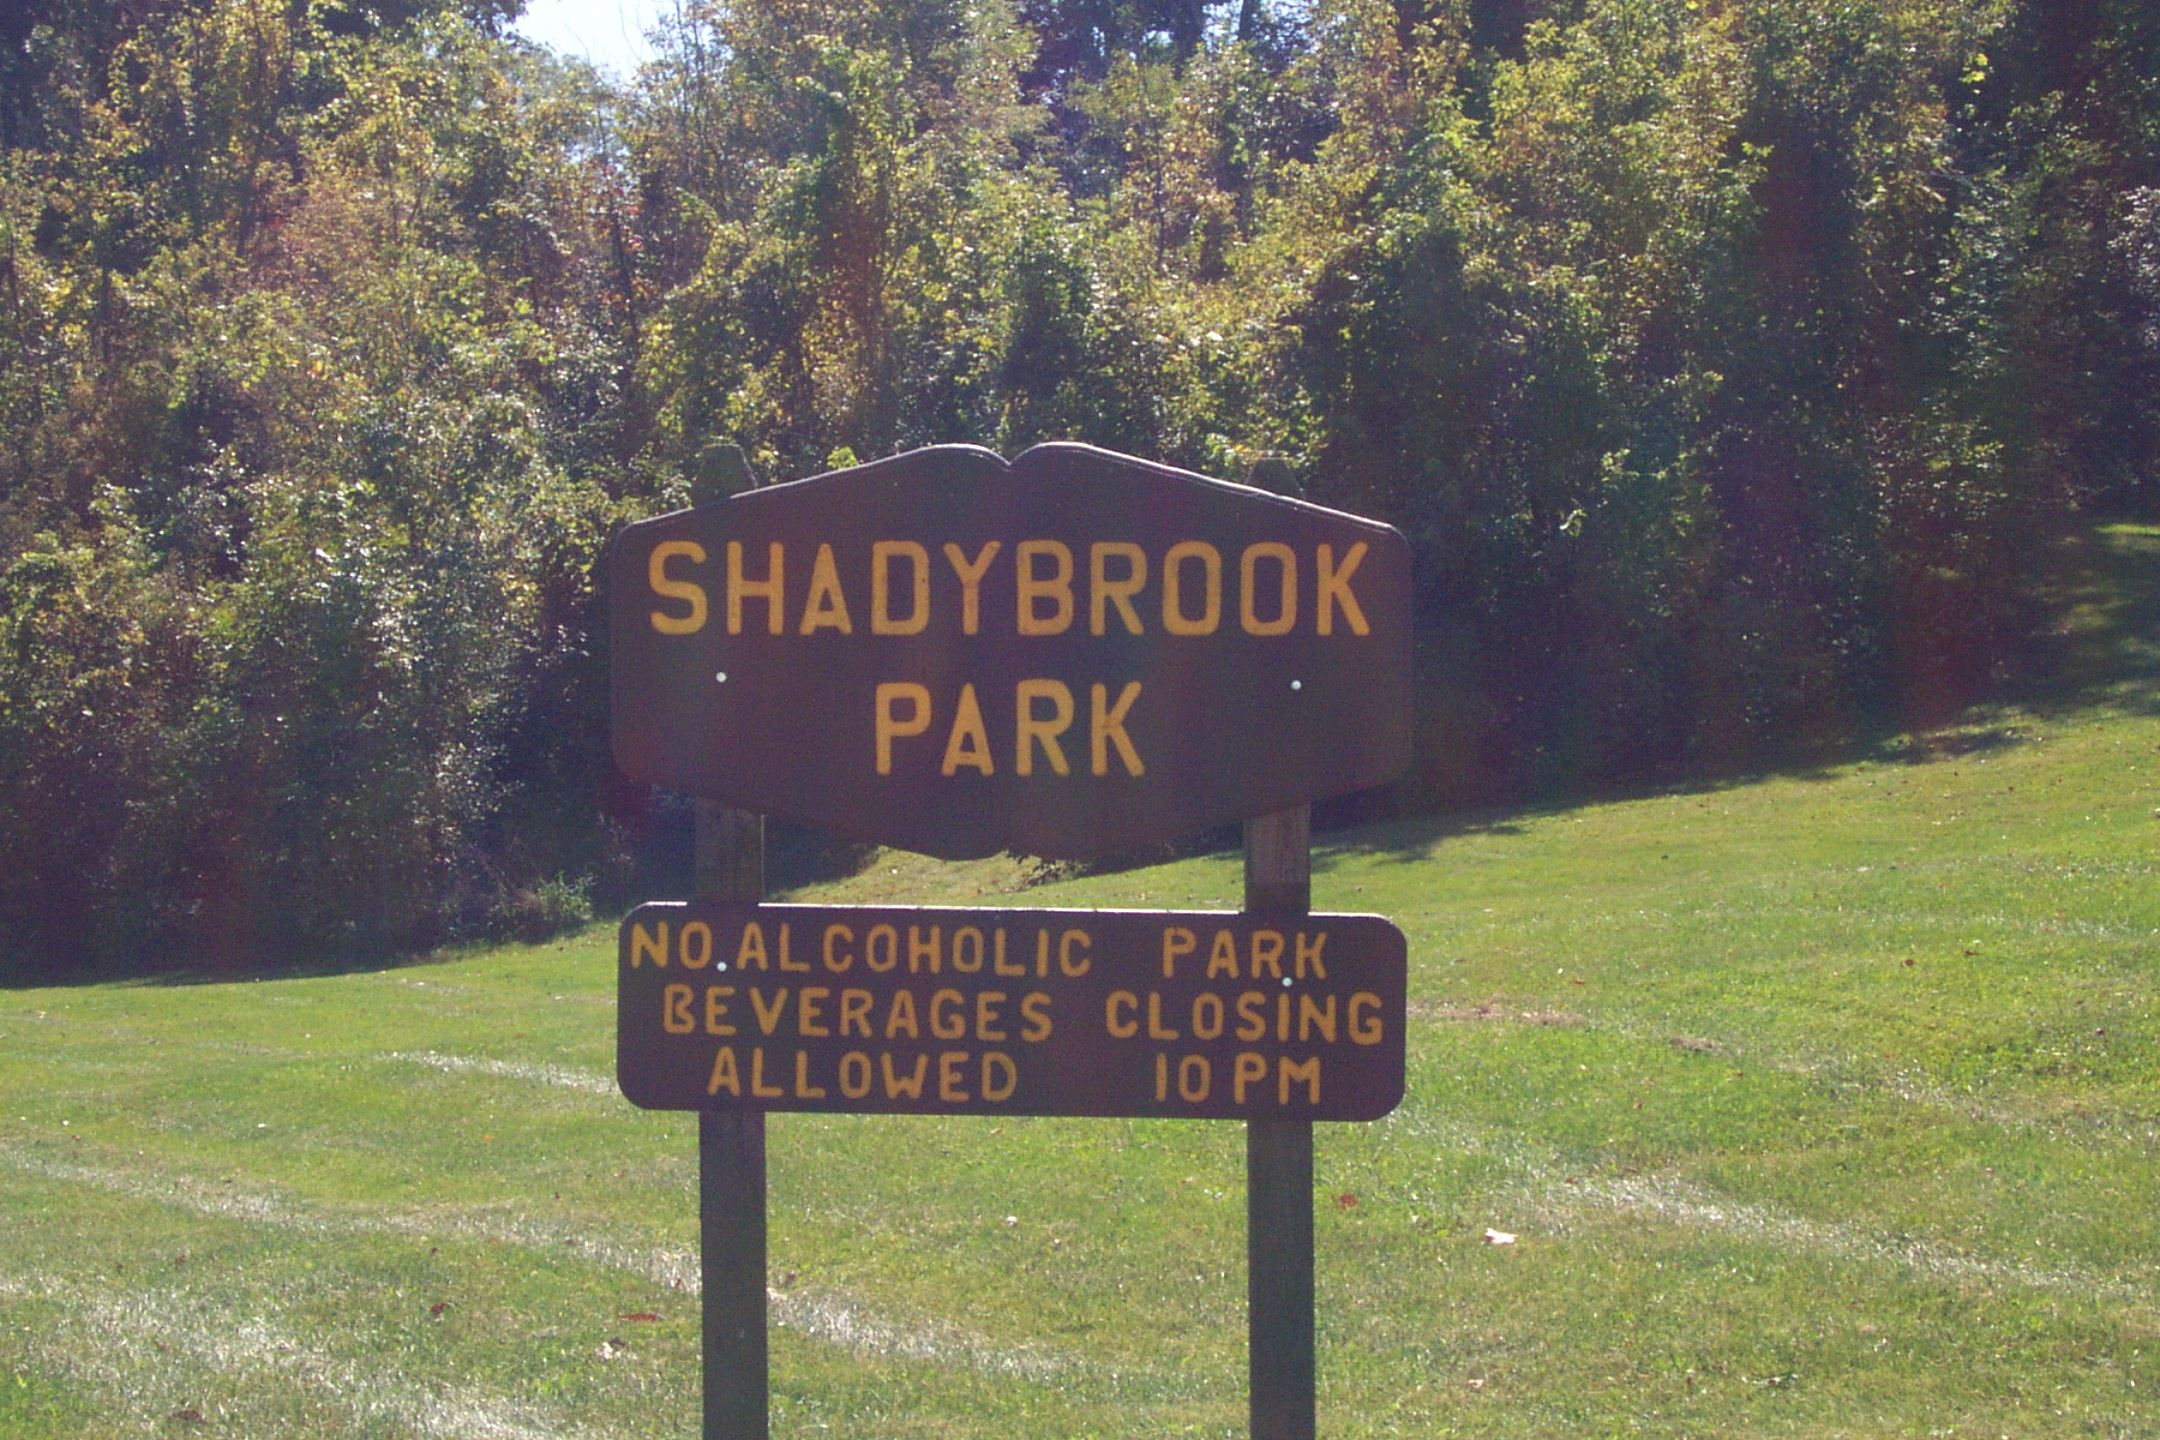 Shadybrook Park No Alcoholic Beverages Allowed Park Closing 10 p.m. sign